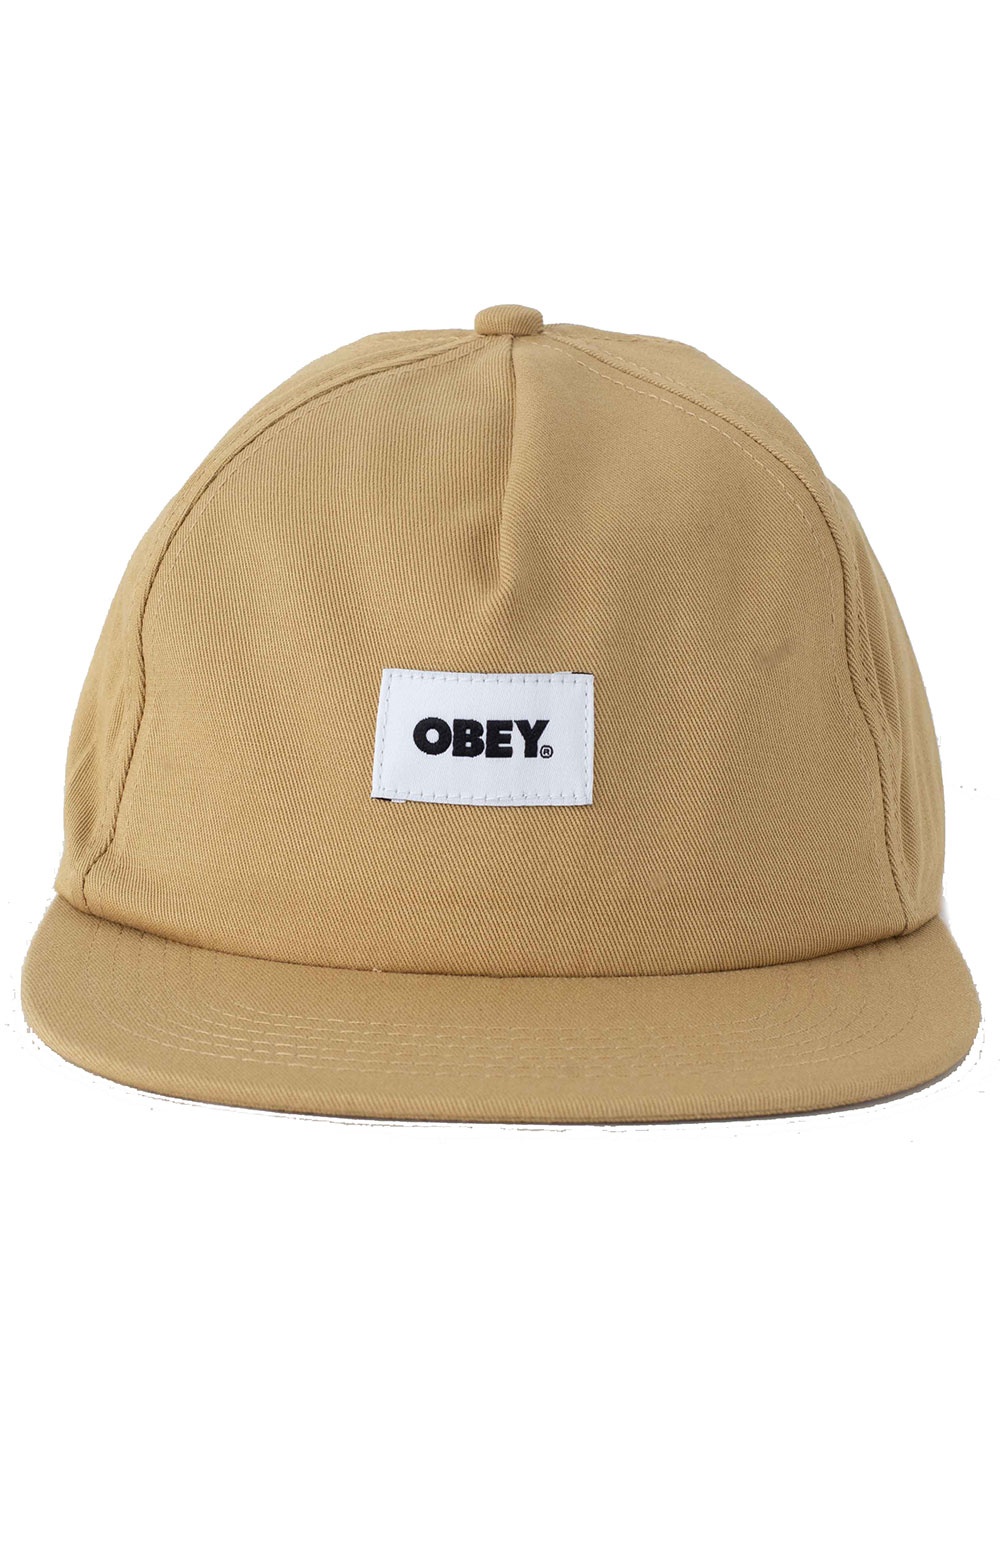 Bold Label Organic Snap-Back Hat - Almond  2